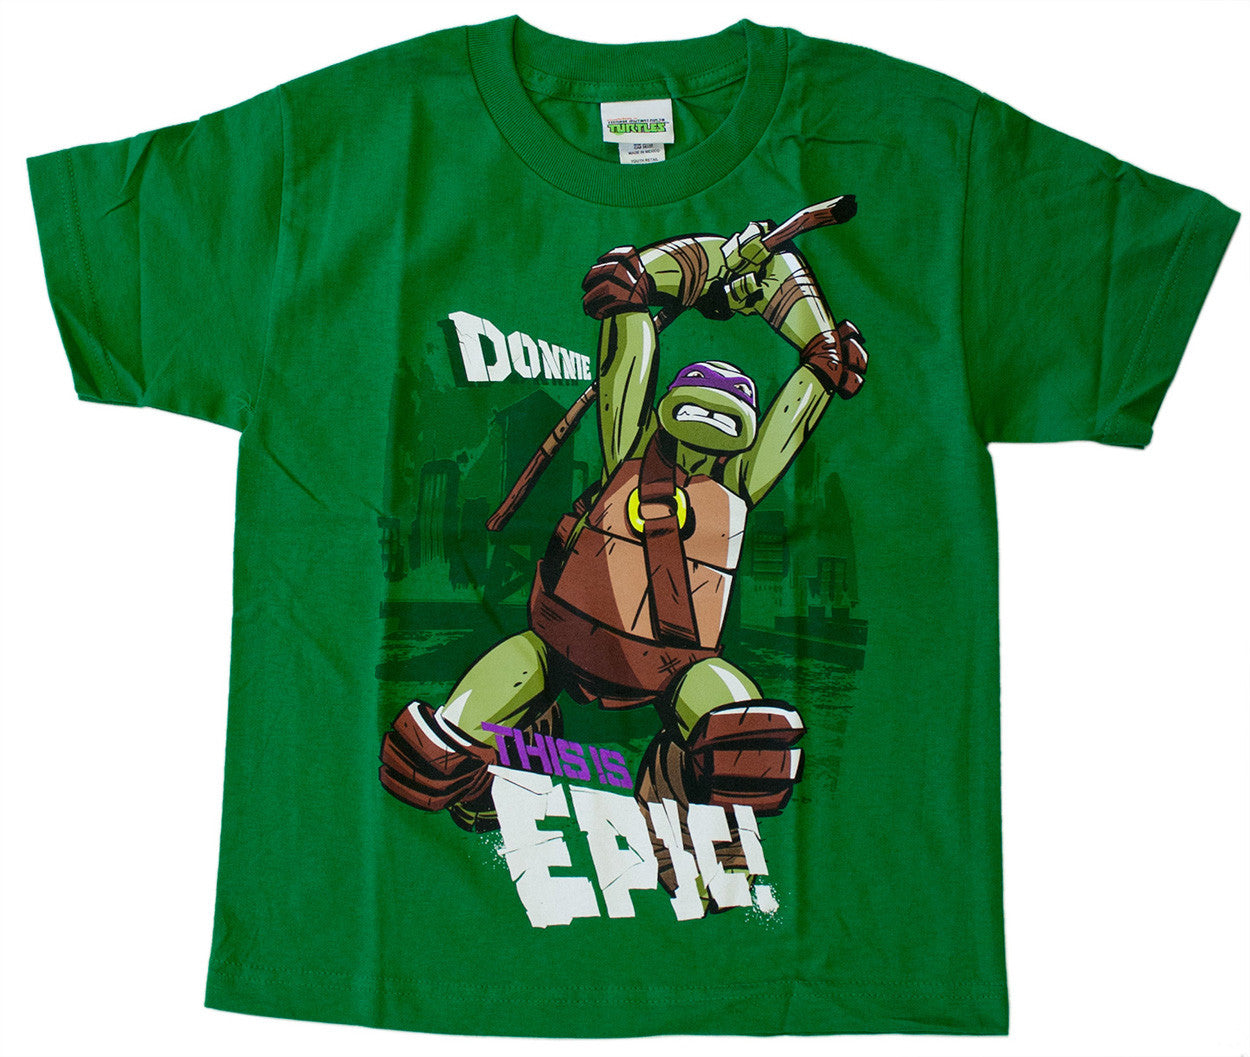 Teenage Mutant Ninja Turtles This Is Epic T-shirt